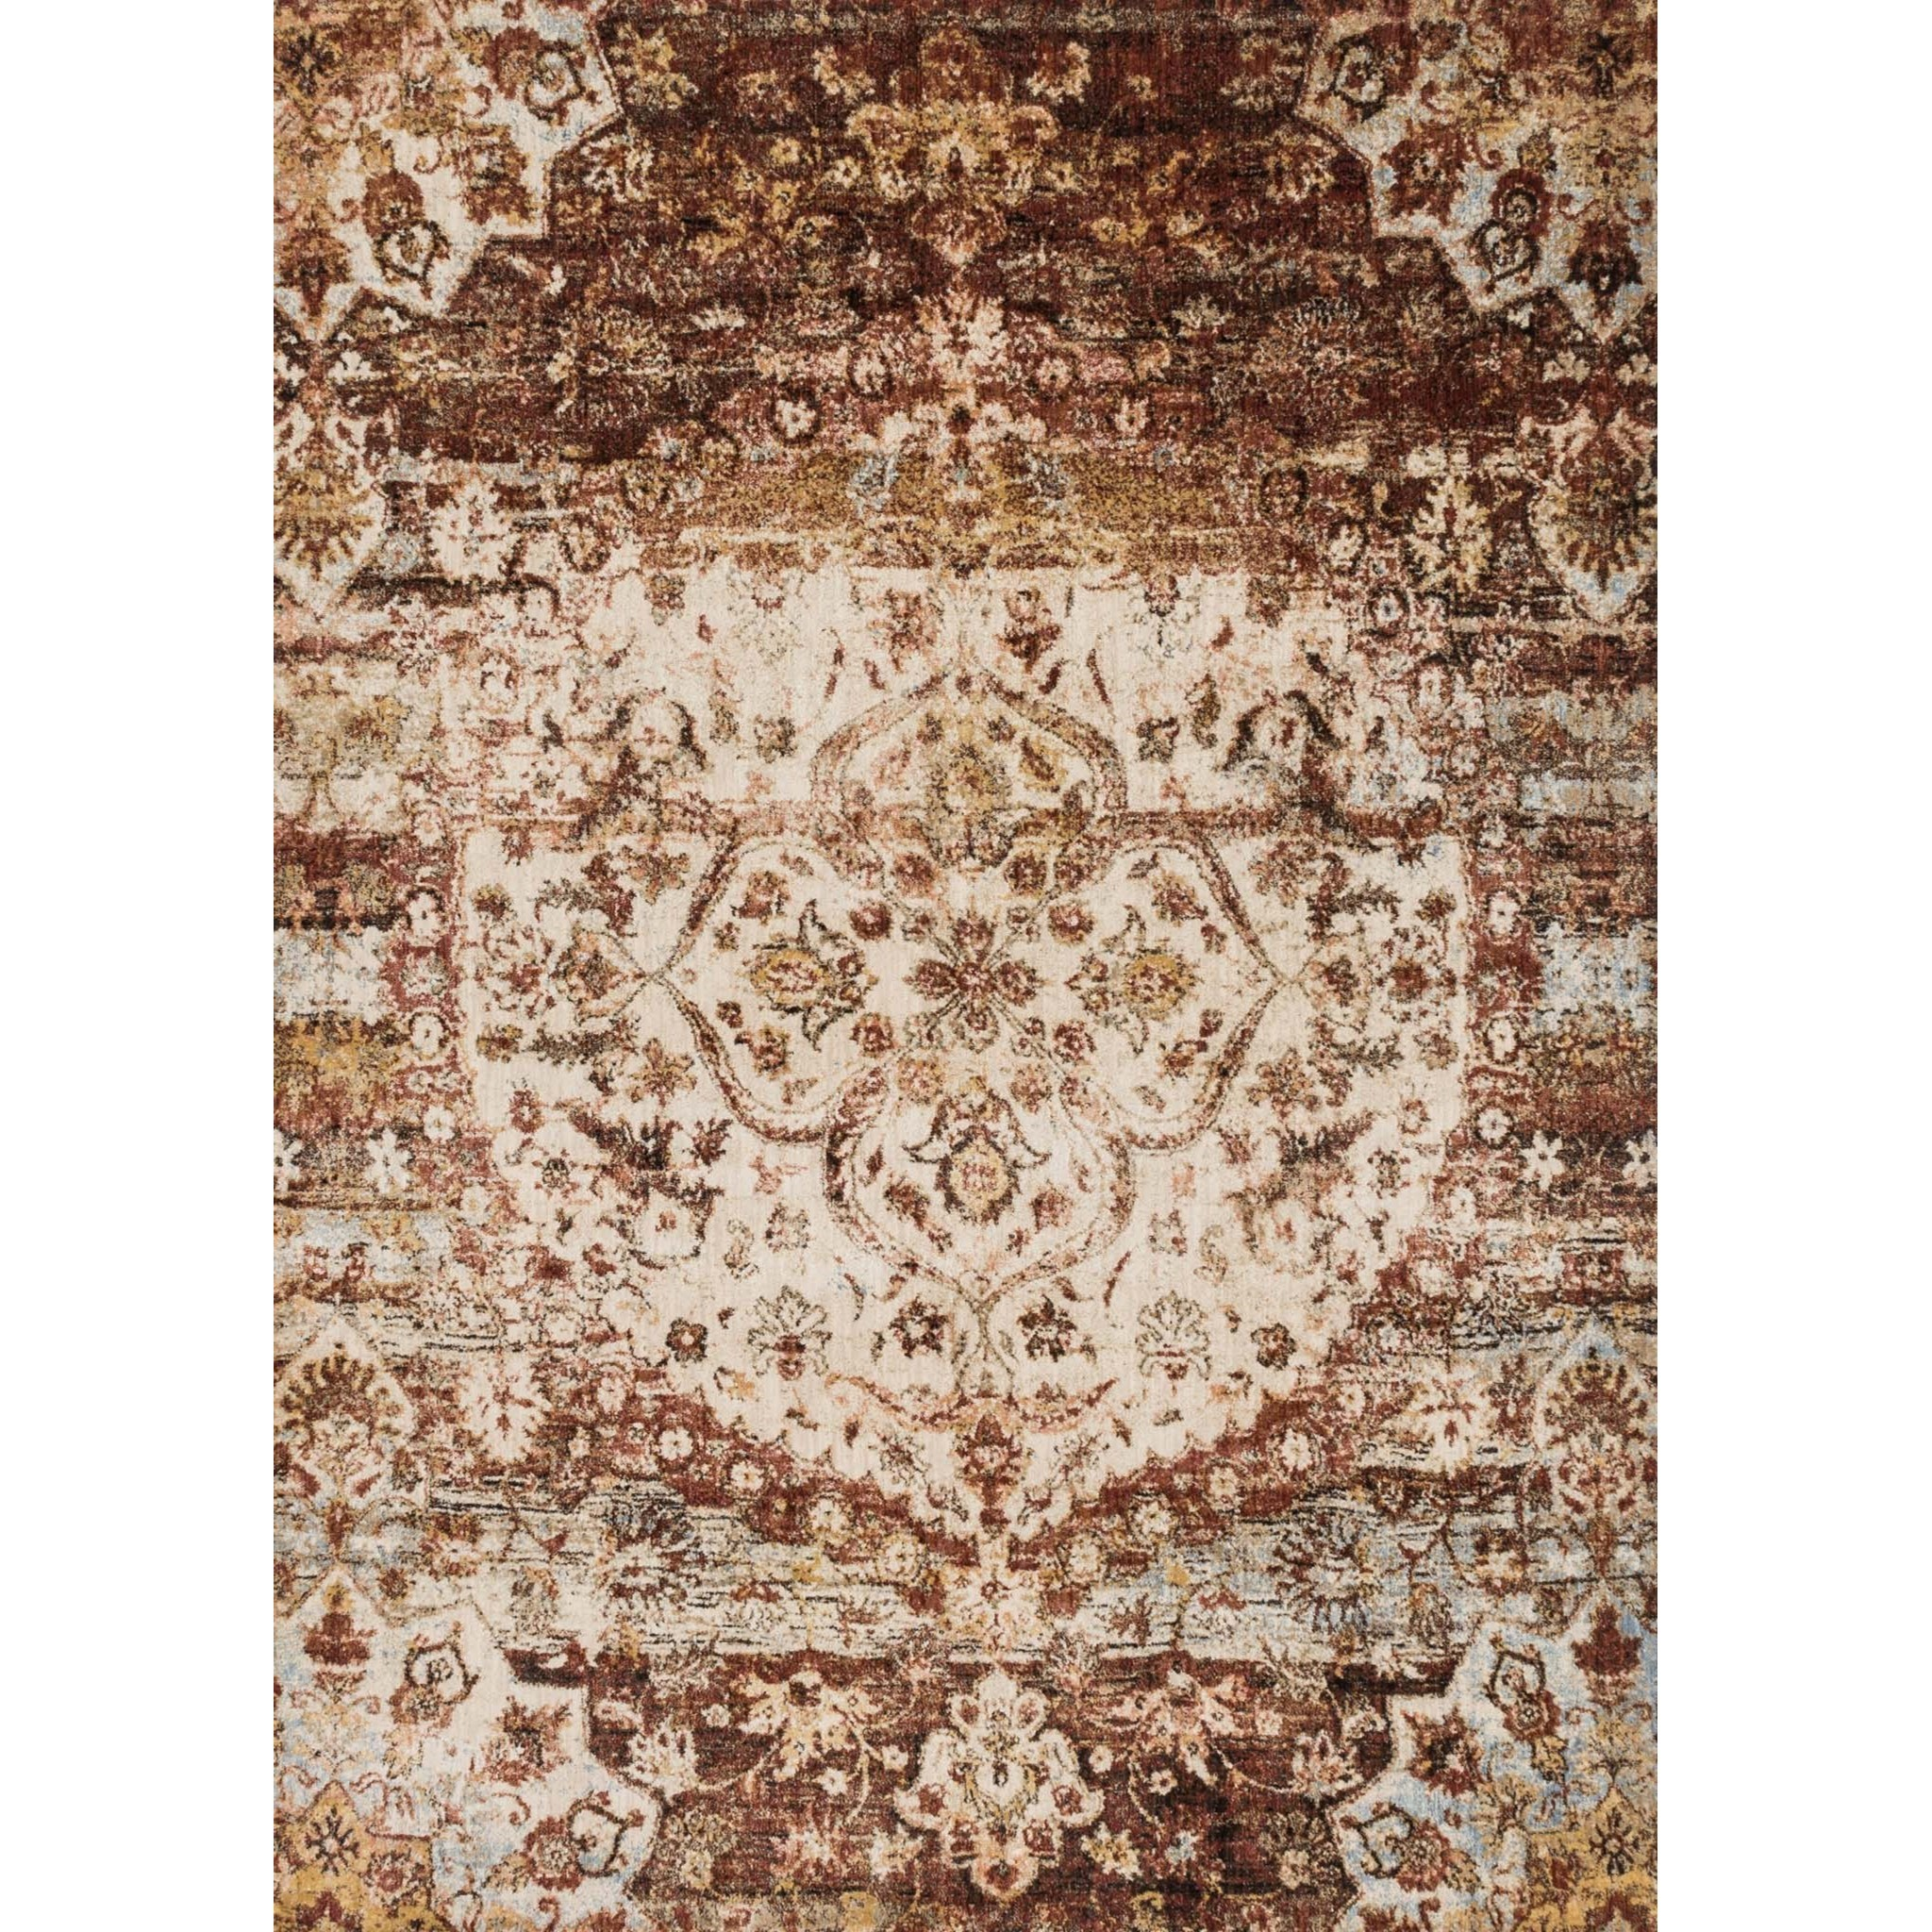 Anastasia 13' X 18' Area Rug by Loloi Rugs at Belfort Furniture